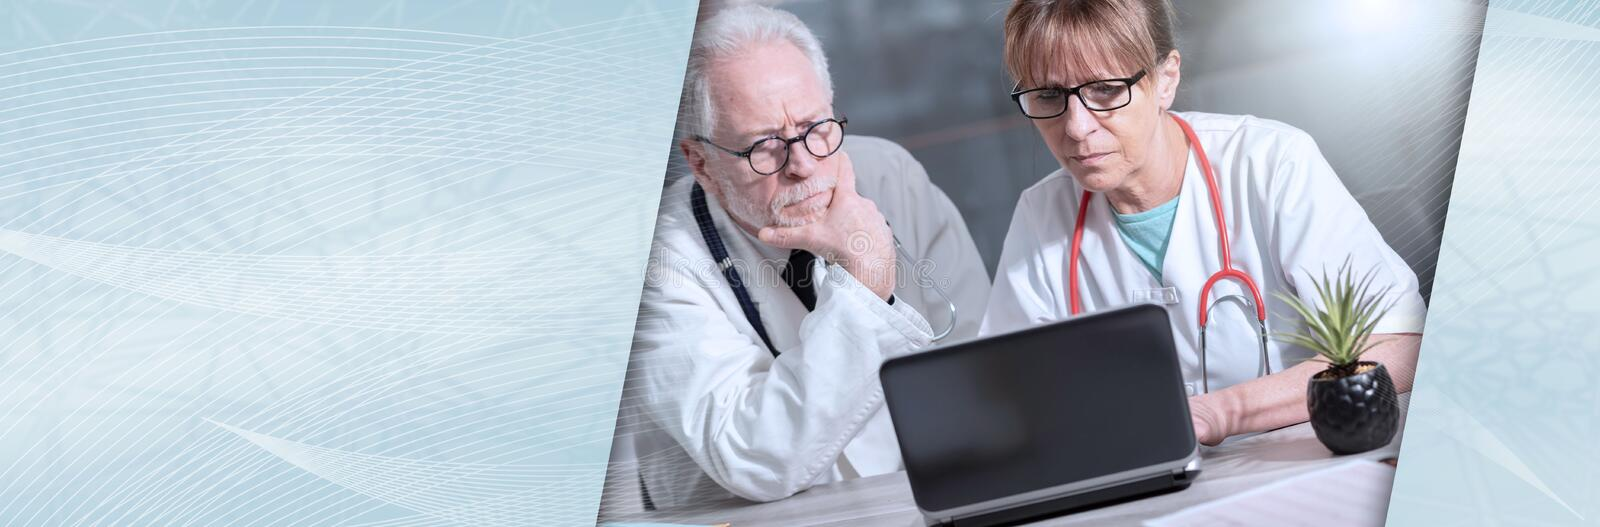 Two doctors discussing about medical report on laptop; panoramic banner royalty free stock photography